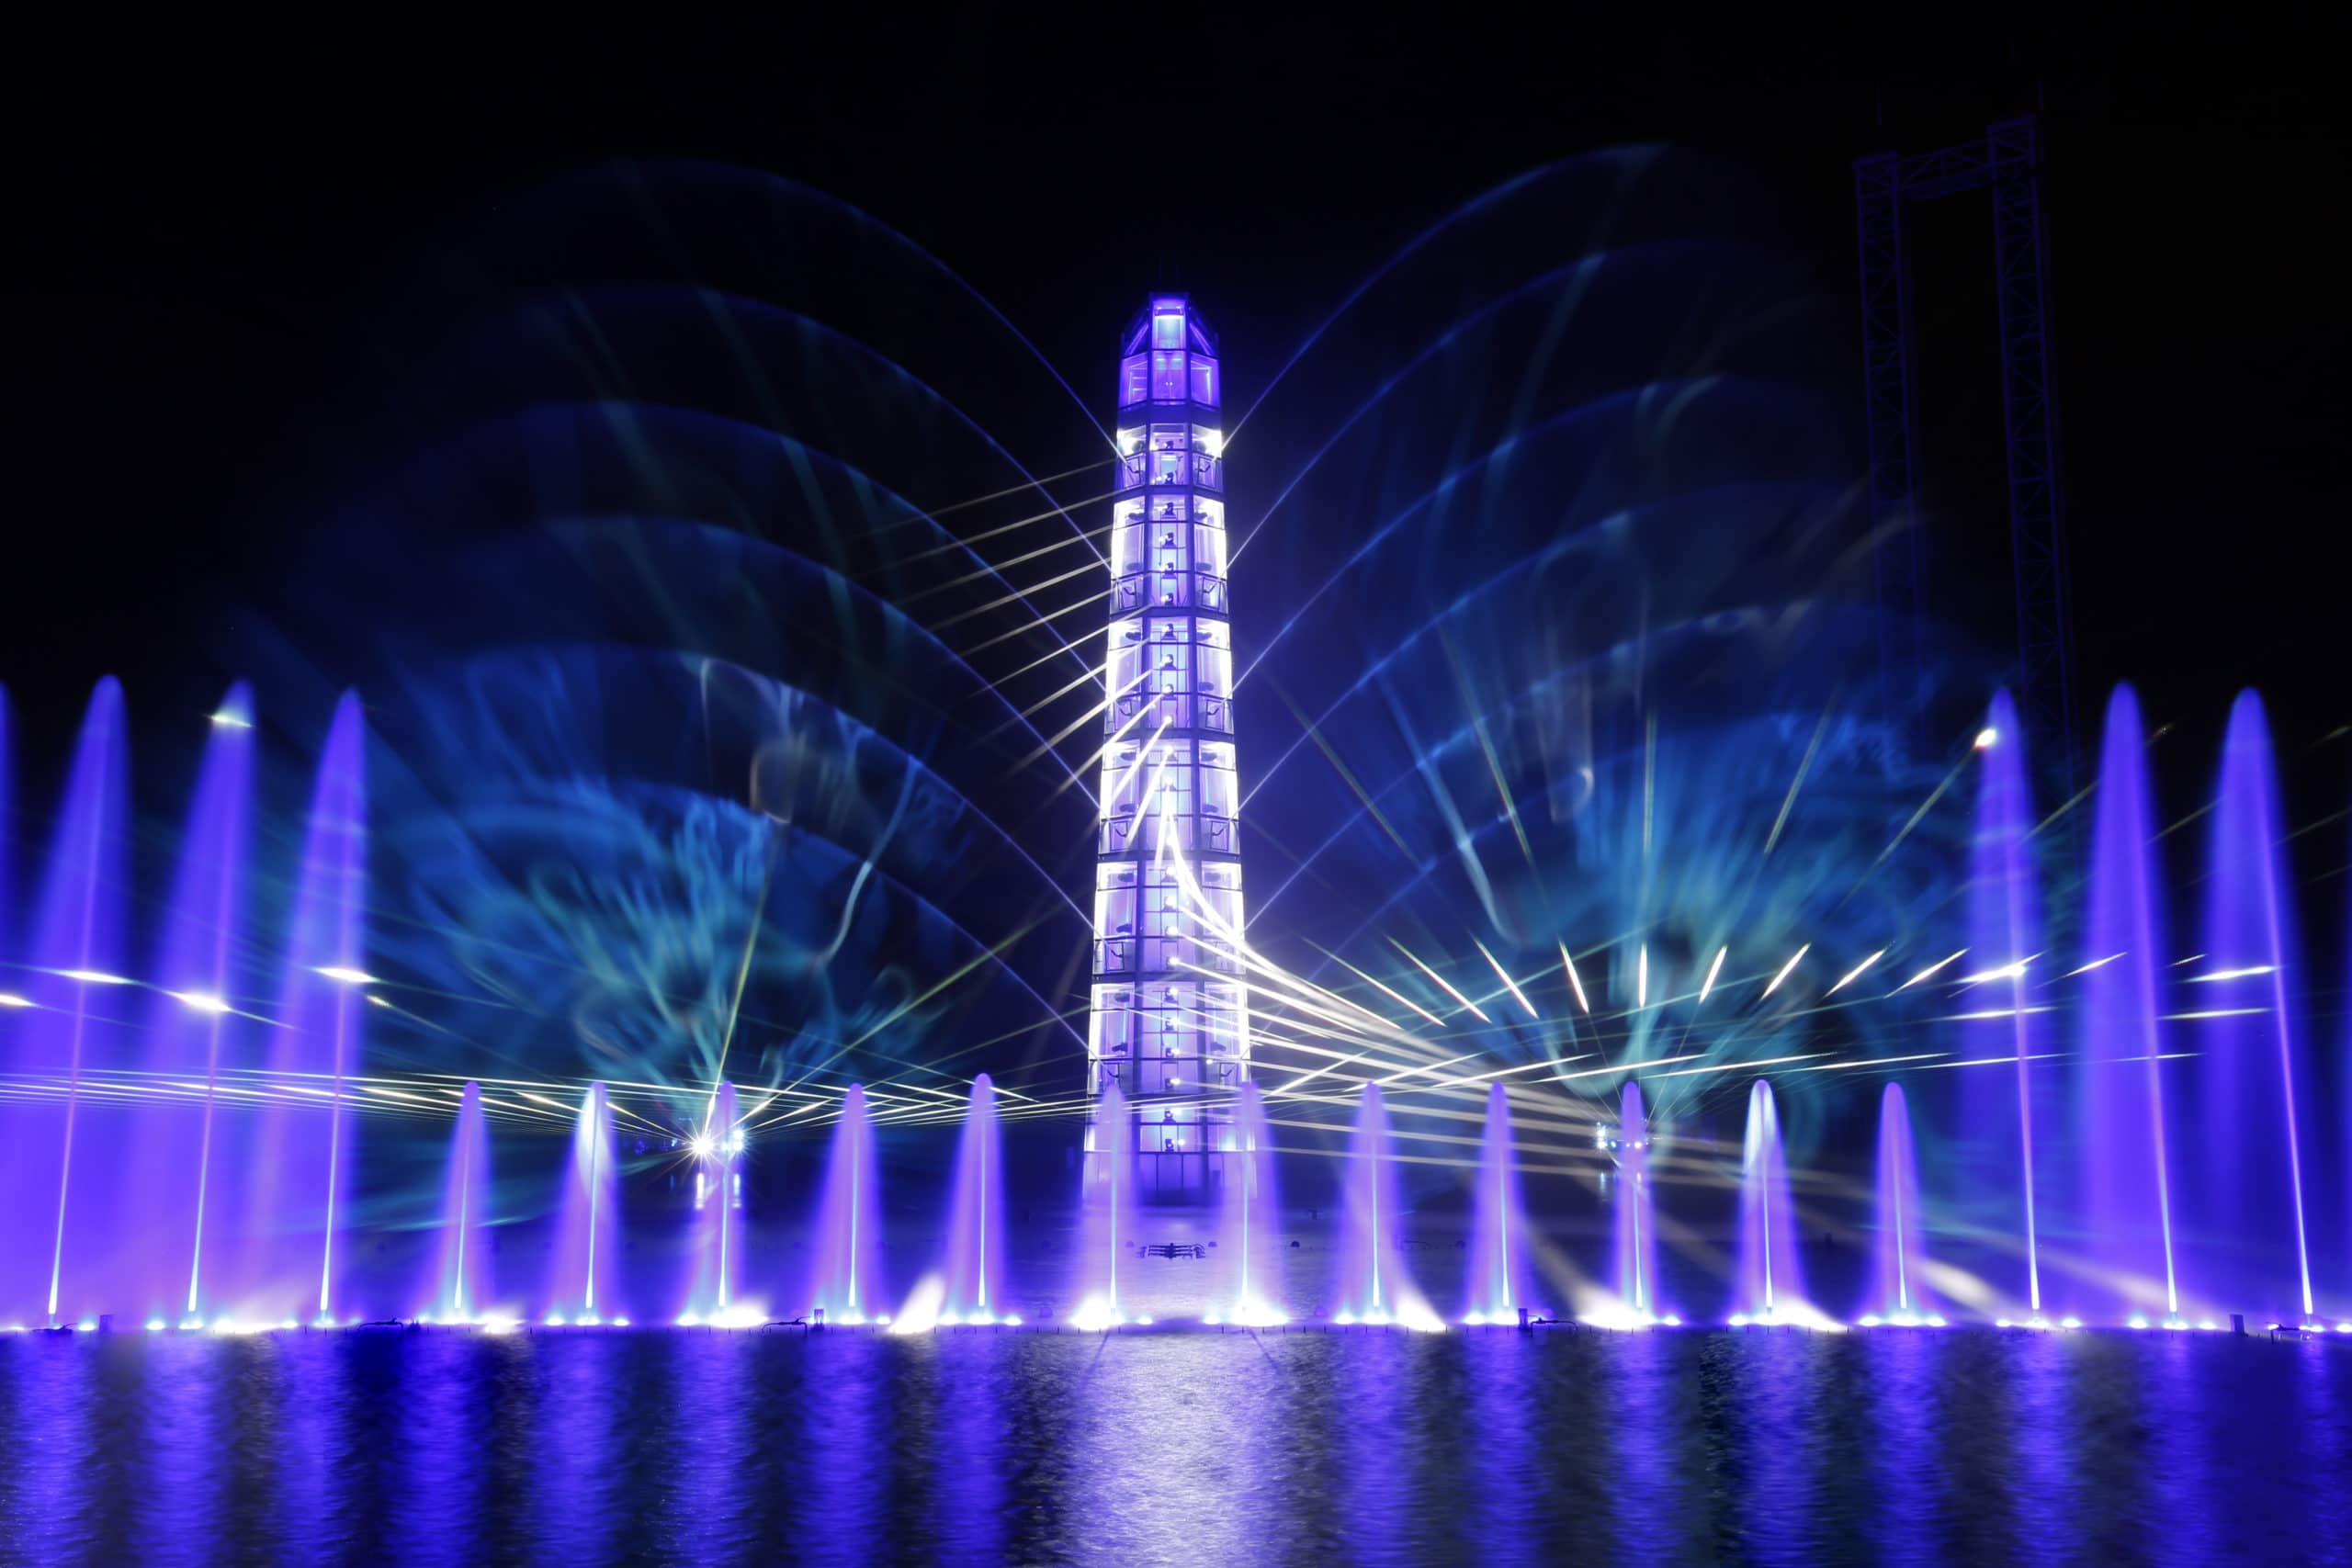 Lake-of-Illusions-OCT-Shanghai-0